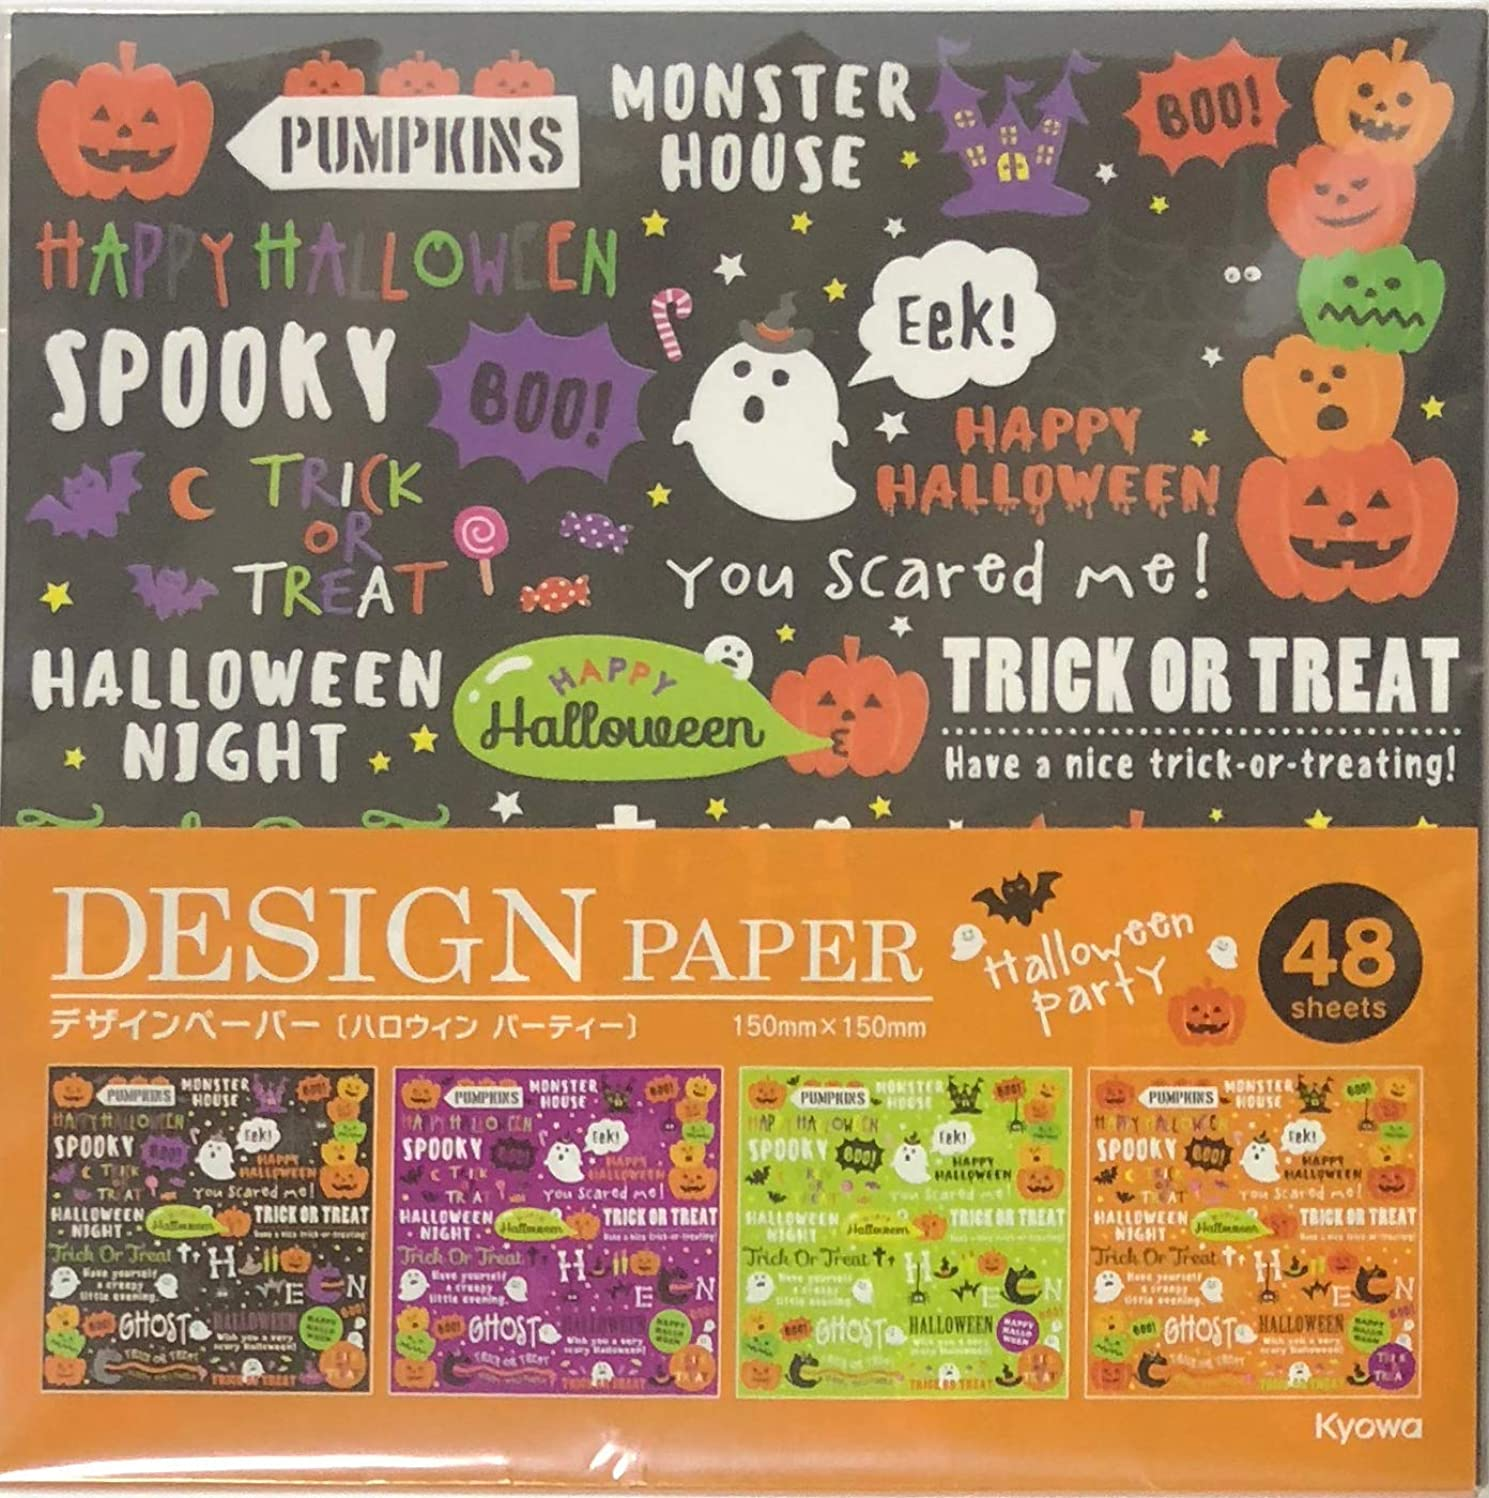 Halloween Character Design Paper 4design 4color 48 Sheets Origami Chiyogami 15×15cm Paper Stationery Japan (Type-D)